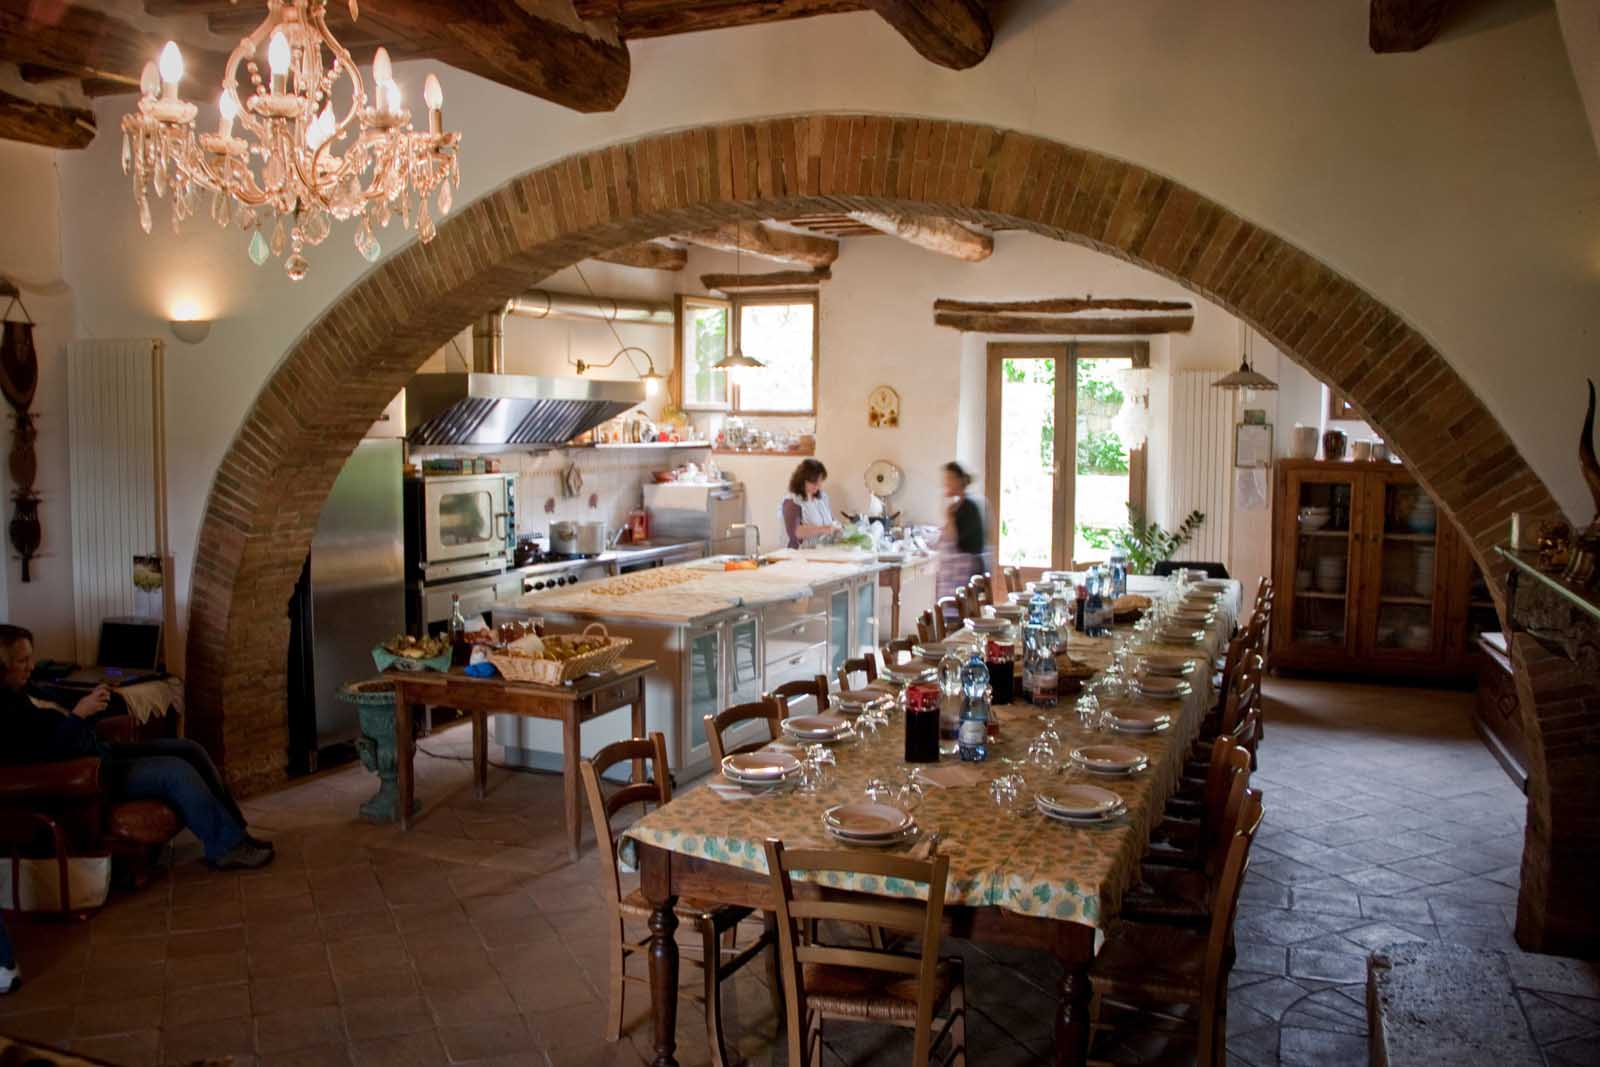 cooking school in tuscany all about food friends and sharing kitchen table cooking school Cooking school in Tuscany all about food friends and sharing Fresh Trails Adventures